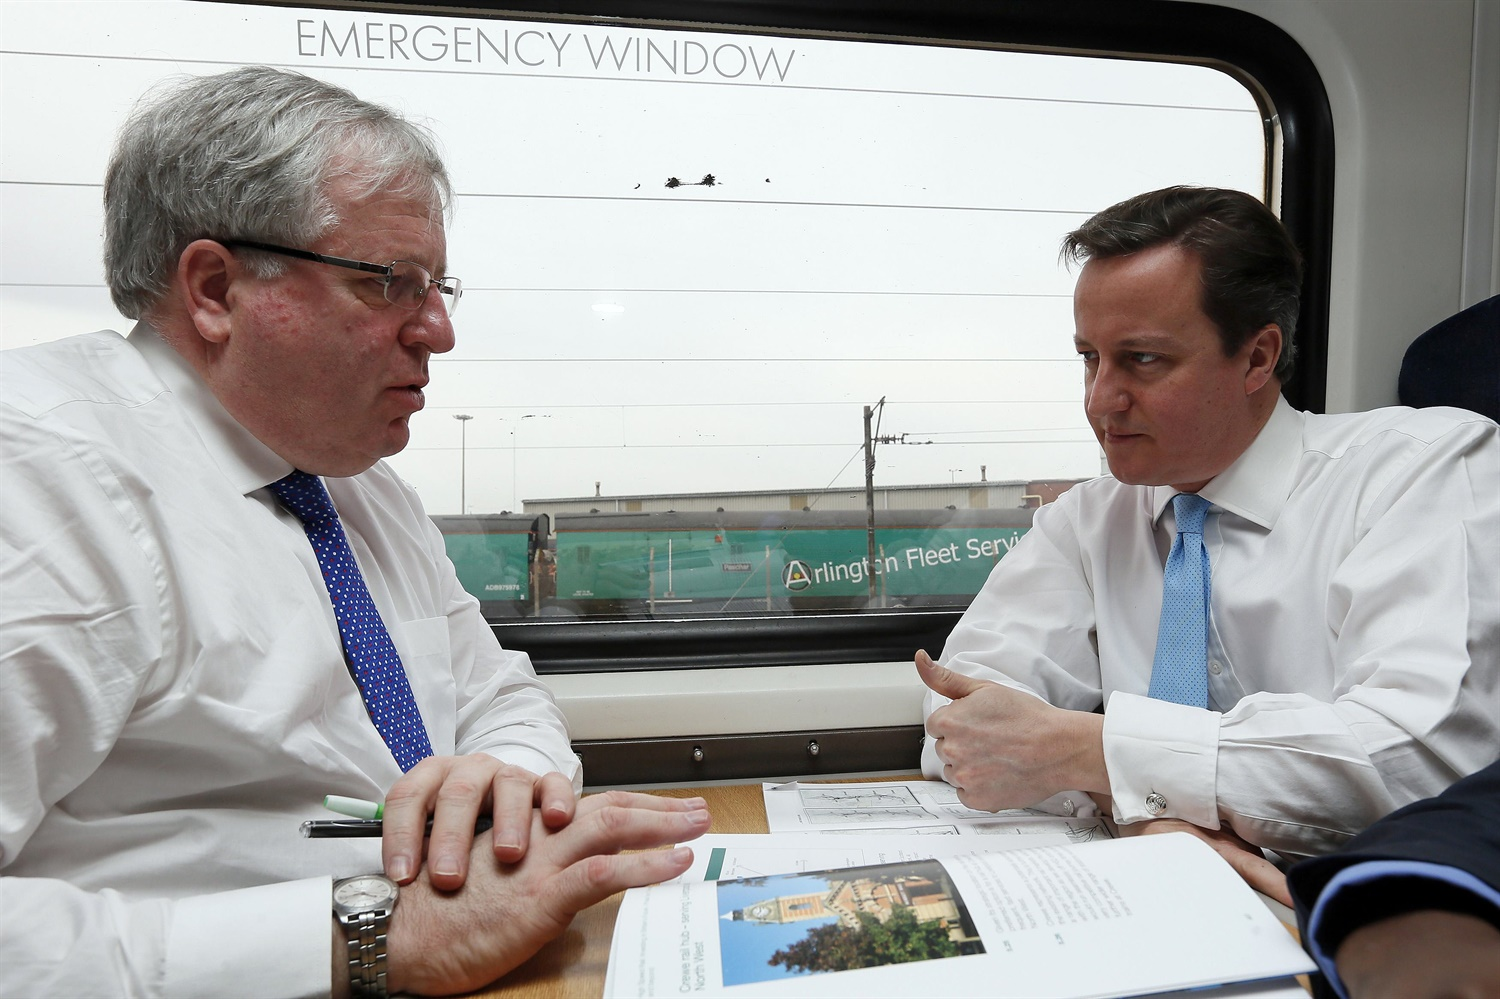 'We've never done this kind of thing before' says McLoughlin as electrification costs rise